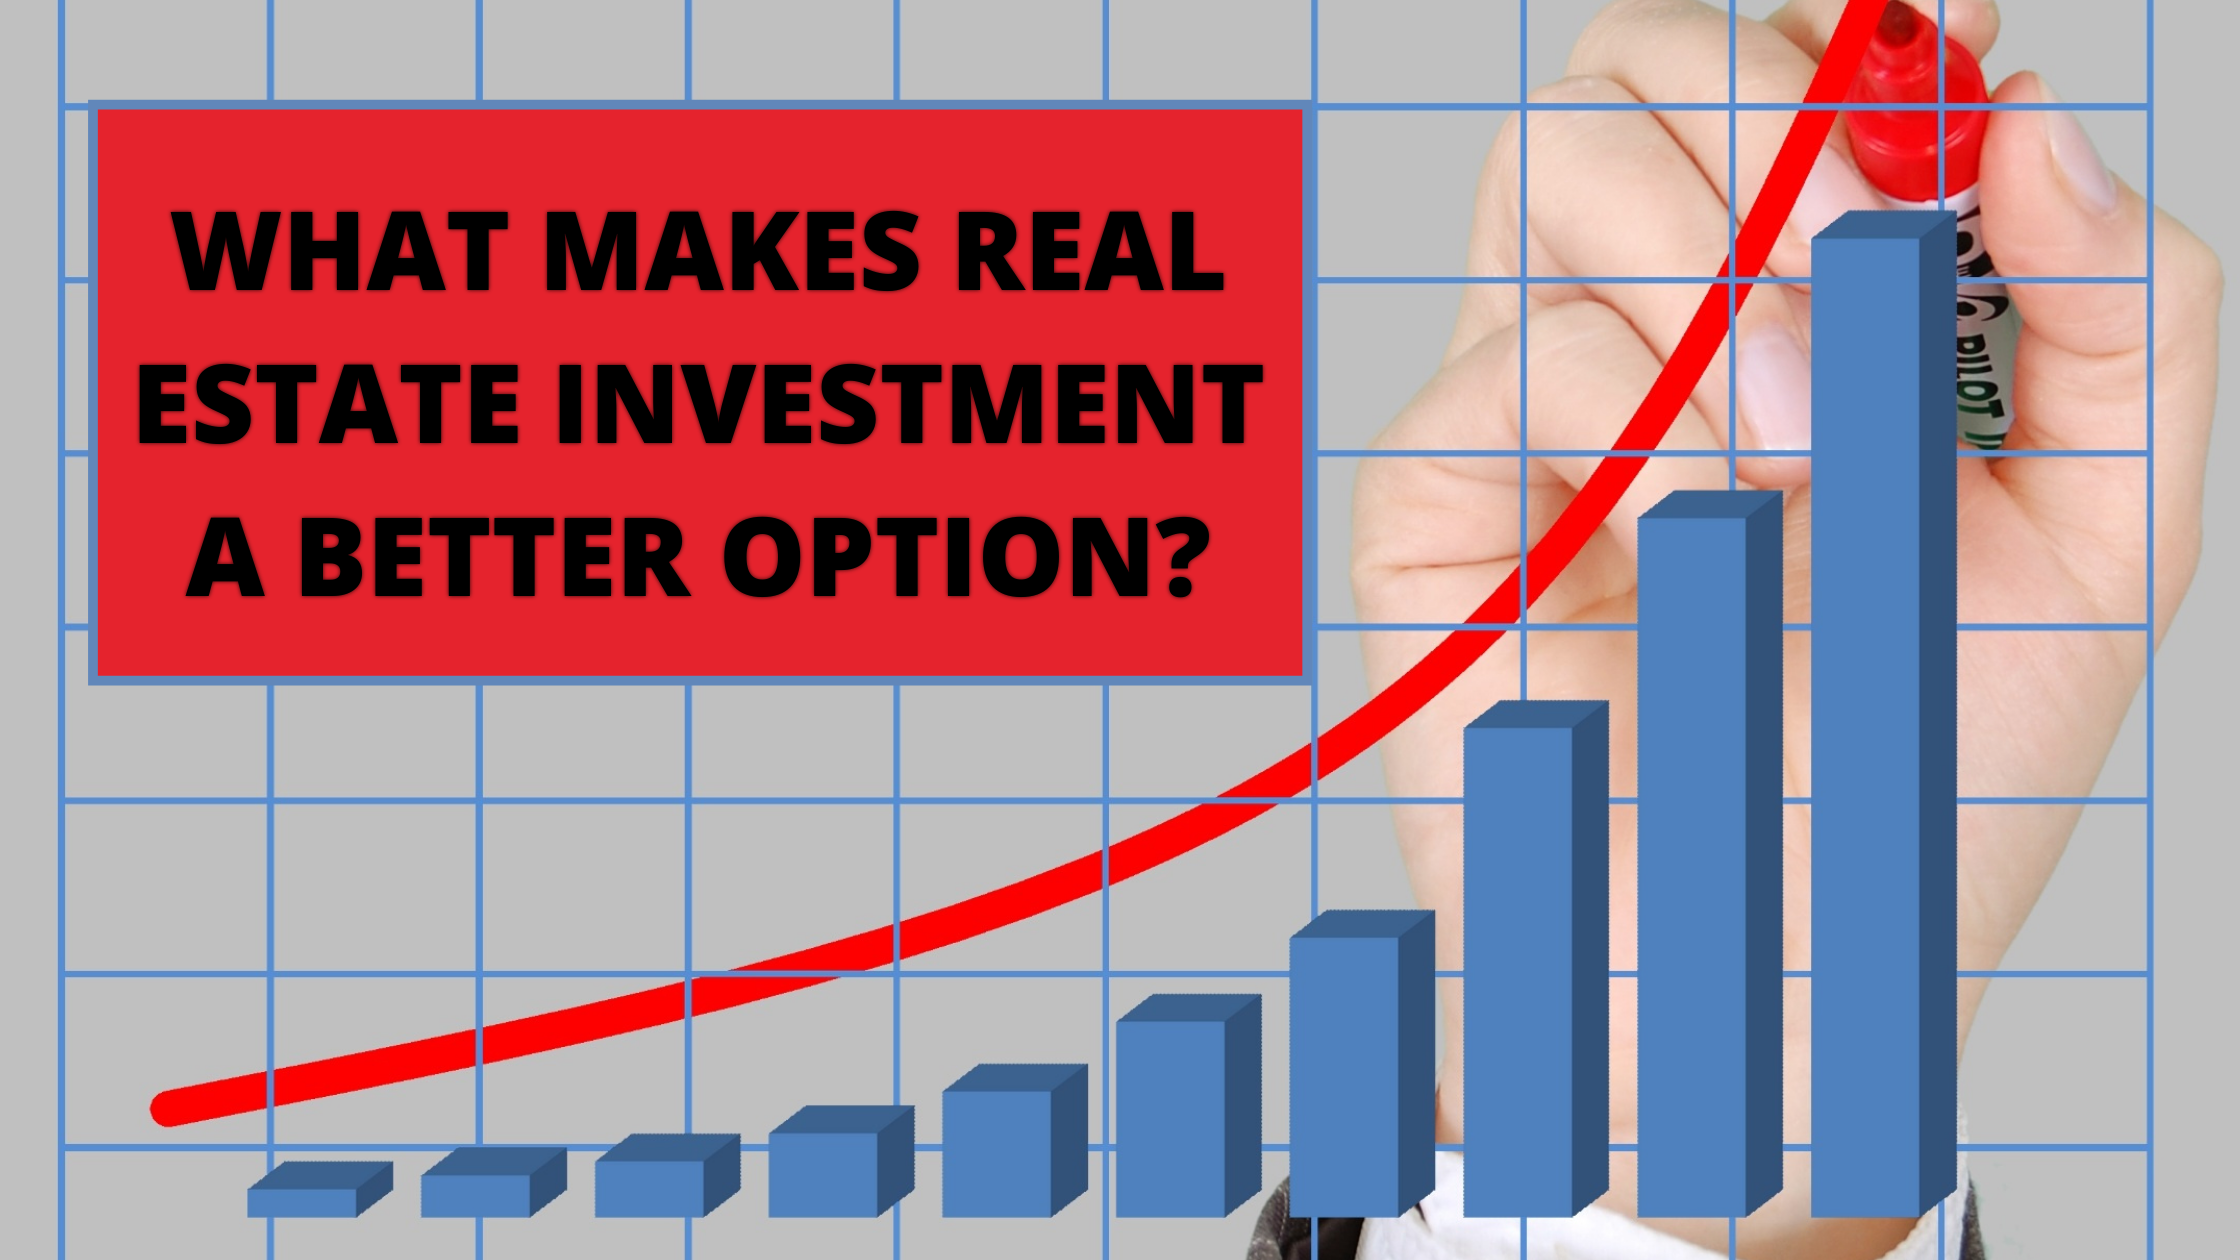 WHAT MAKES REAL ESTATE INVESTMENT A BETTER OPTION?